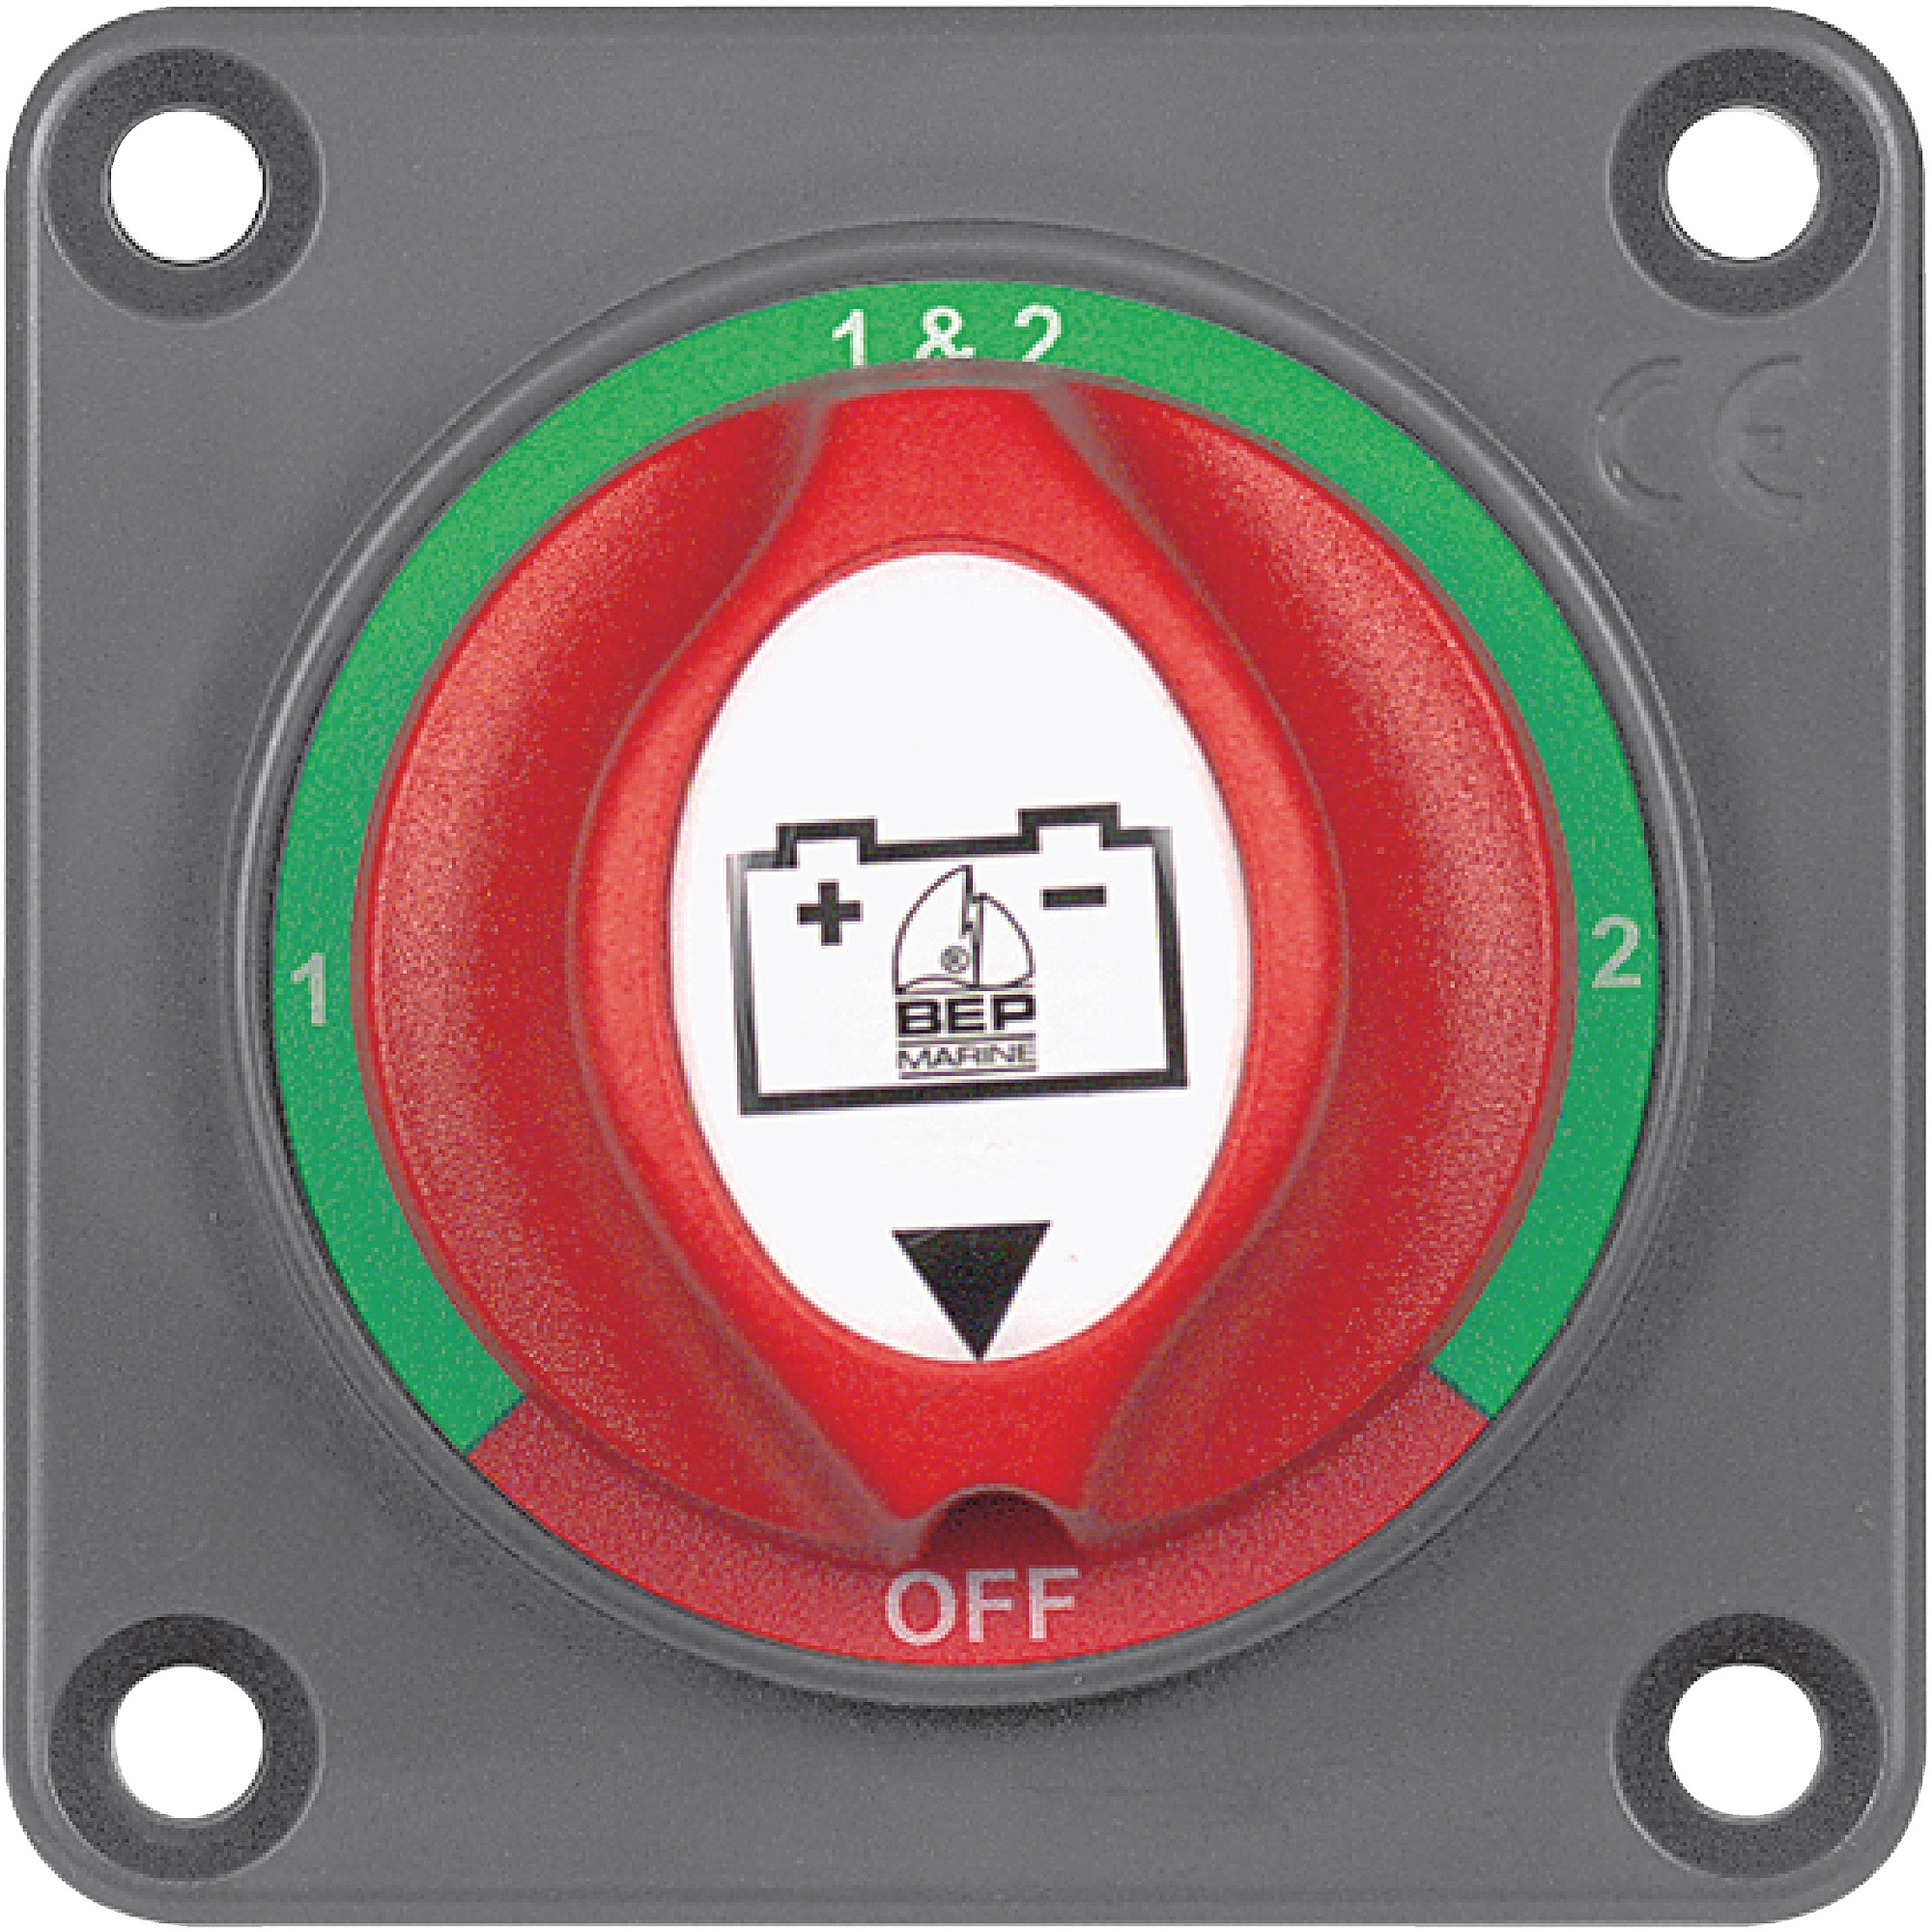 Marinco BEP Panel-Mounted Battery Selector Switch